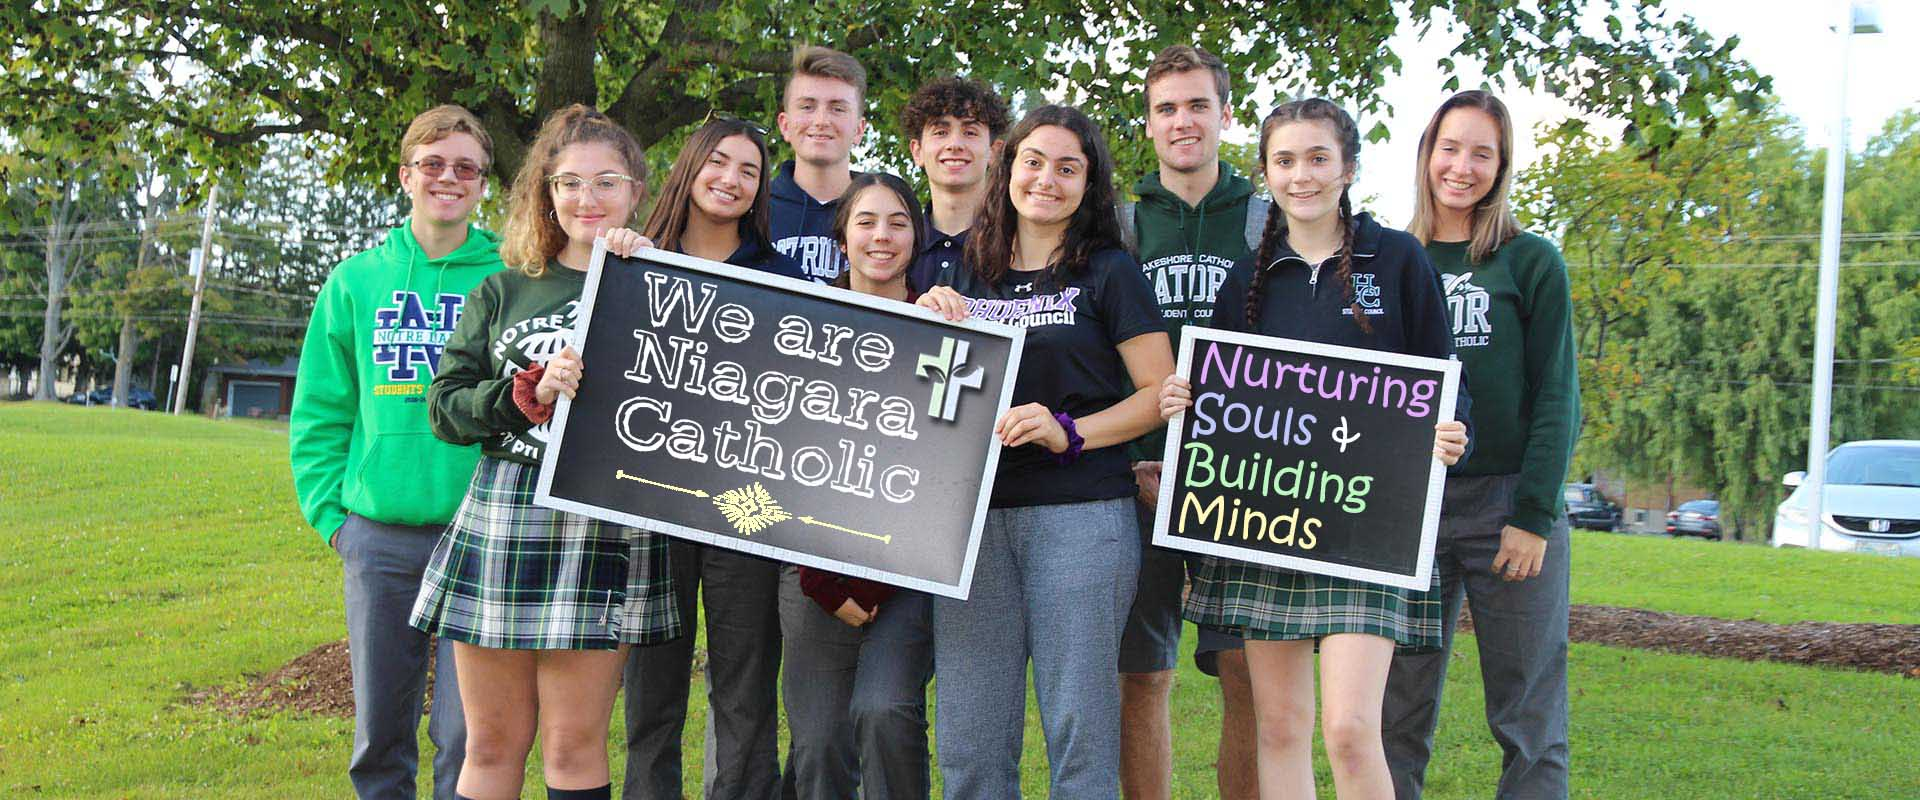 Student Council We are Niagara Catholic